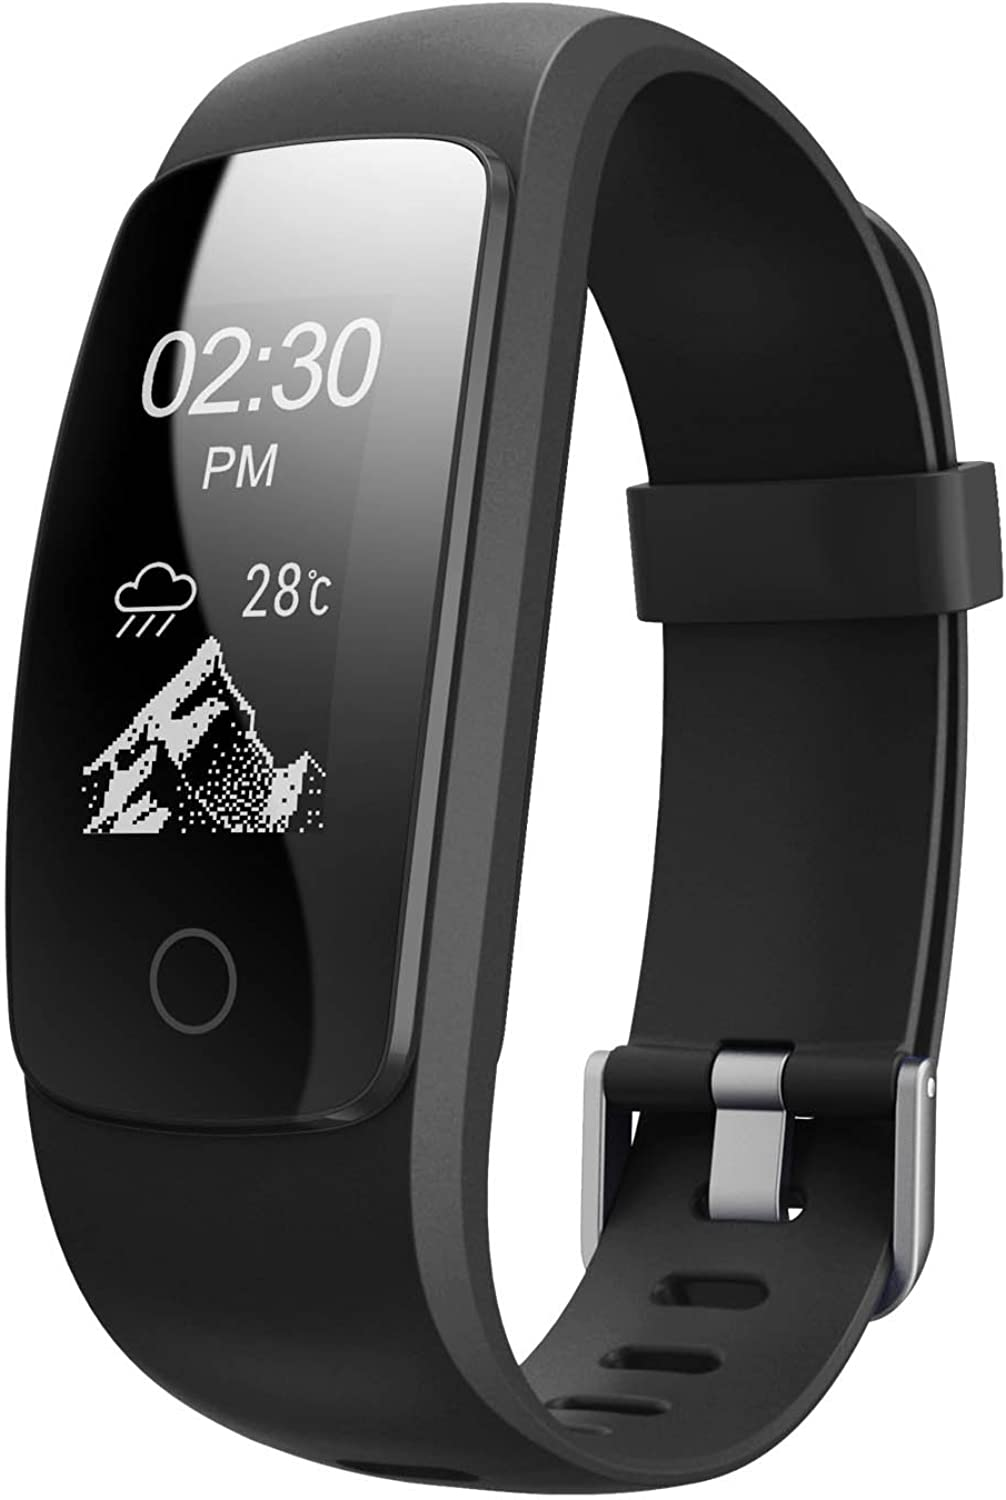 Fitness Tracker HR,Teslasz T107Plus blueeetooth 4.0 Pedometer with Heart Rate Monitor Auto Sleep Monitor Activity Tracker for Android iOS Smart Phone